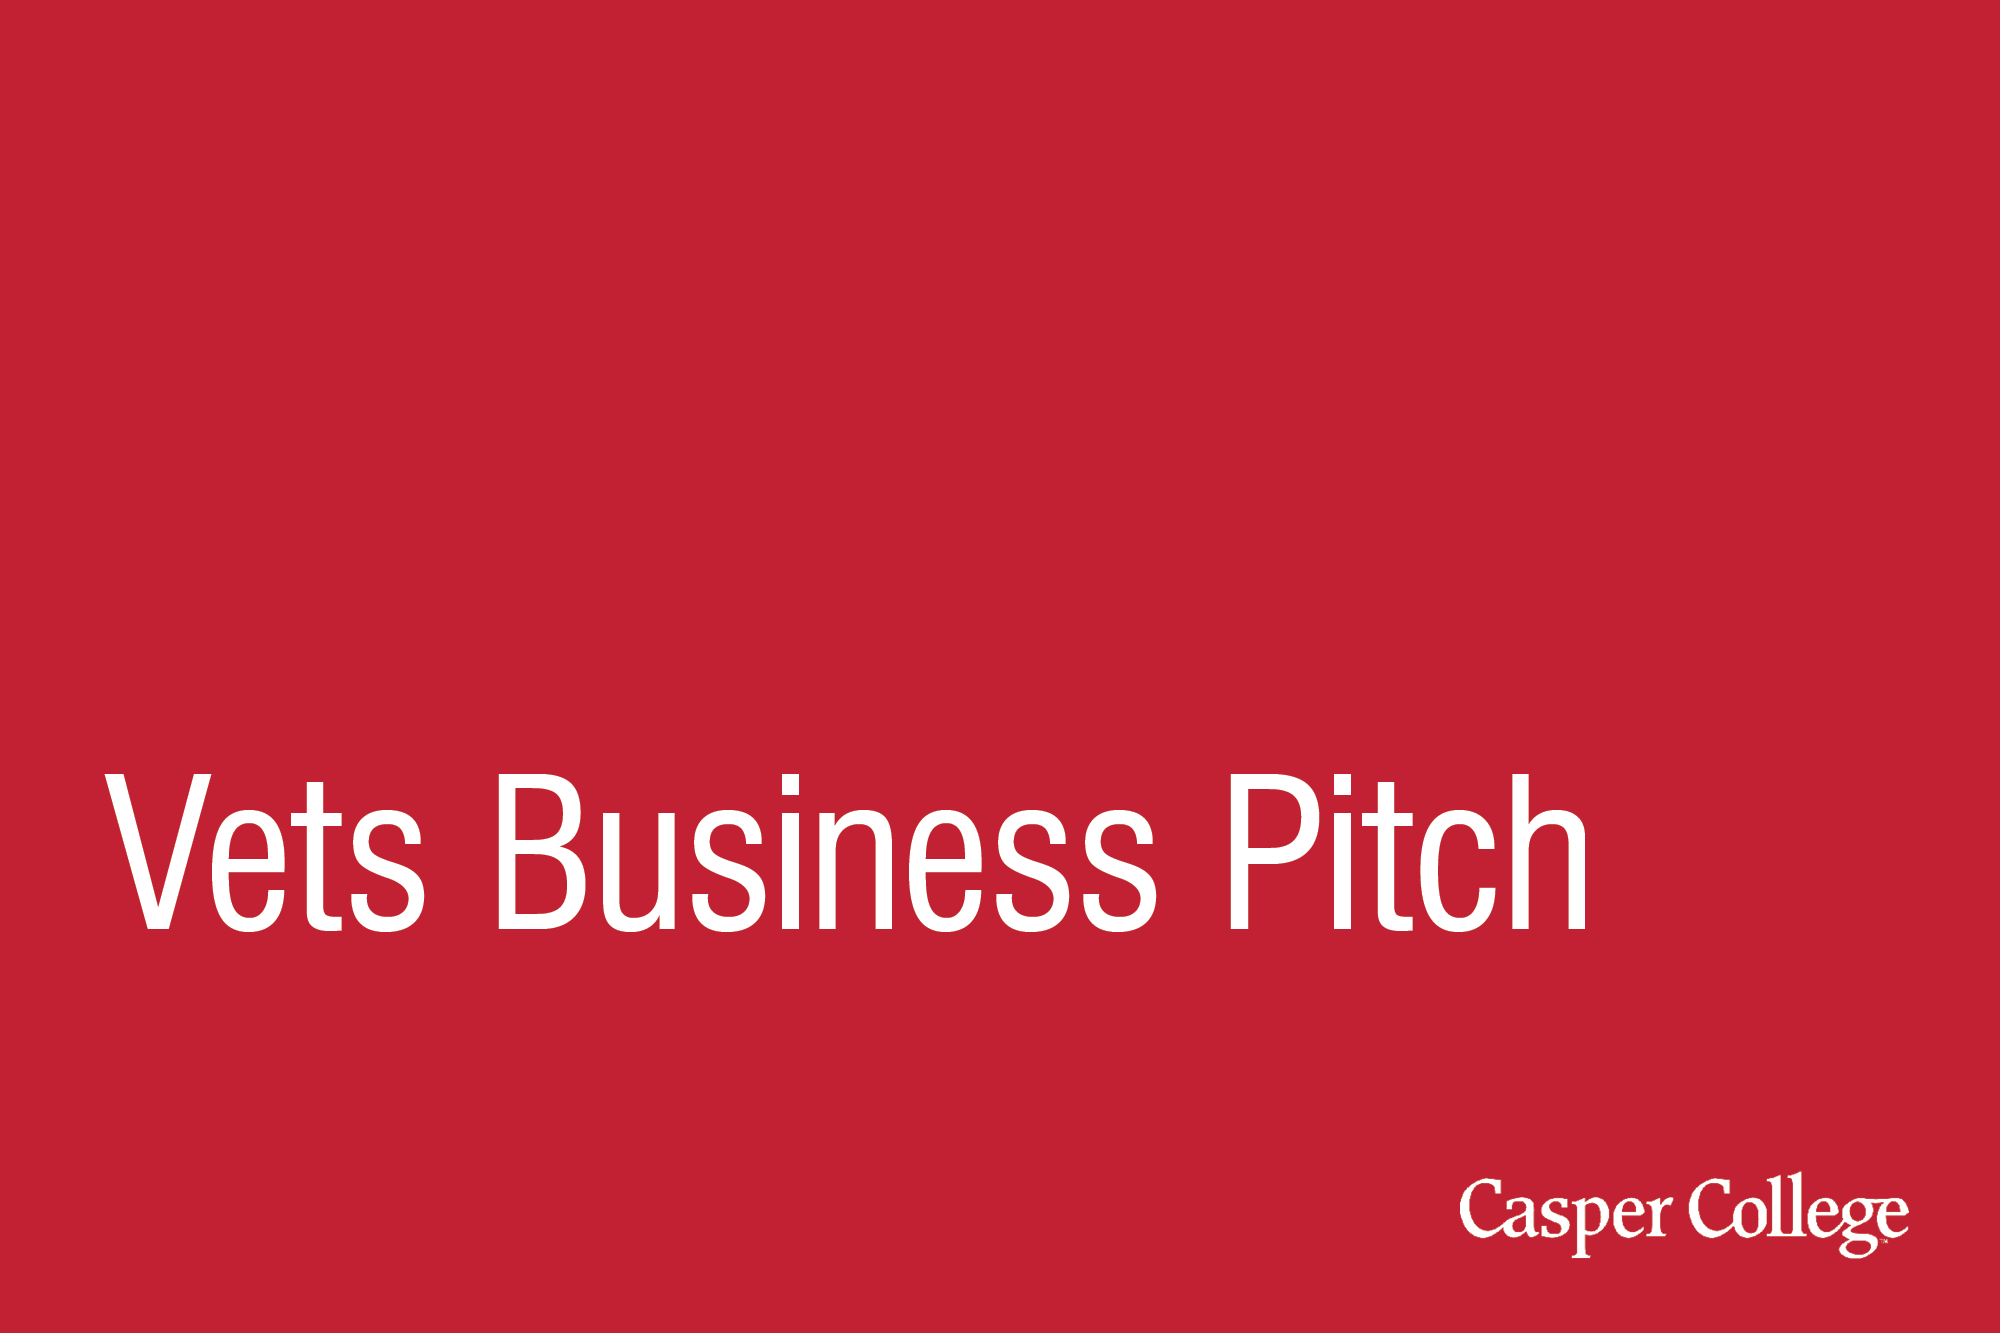 red background with the words Vets Business Pitch